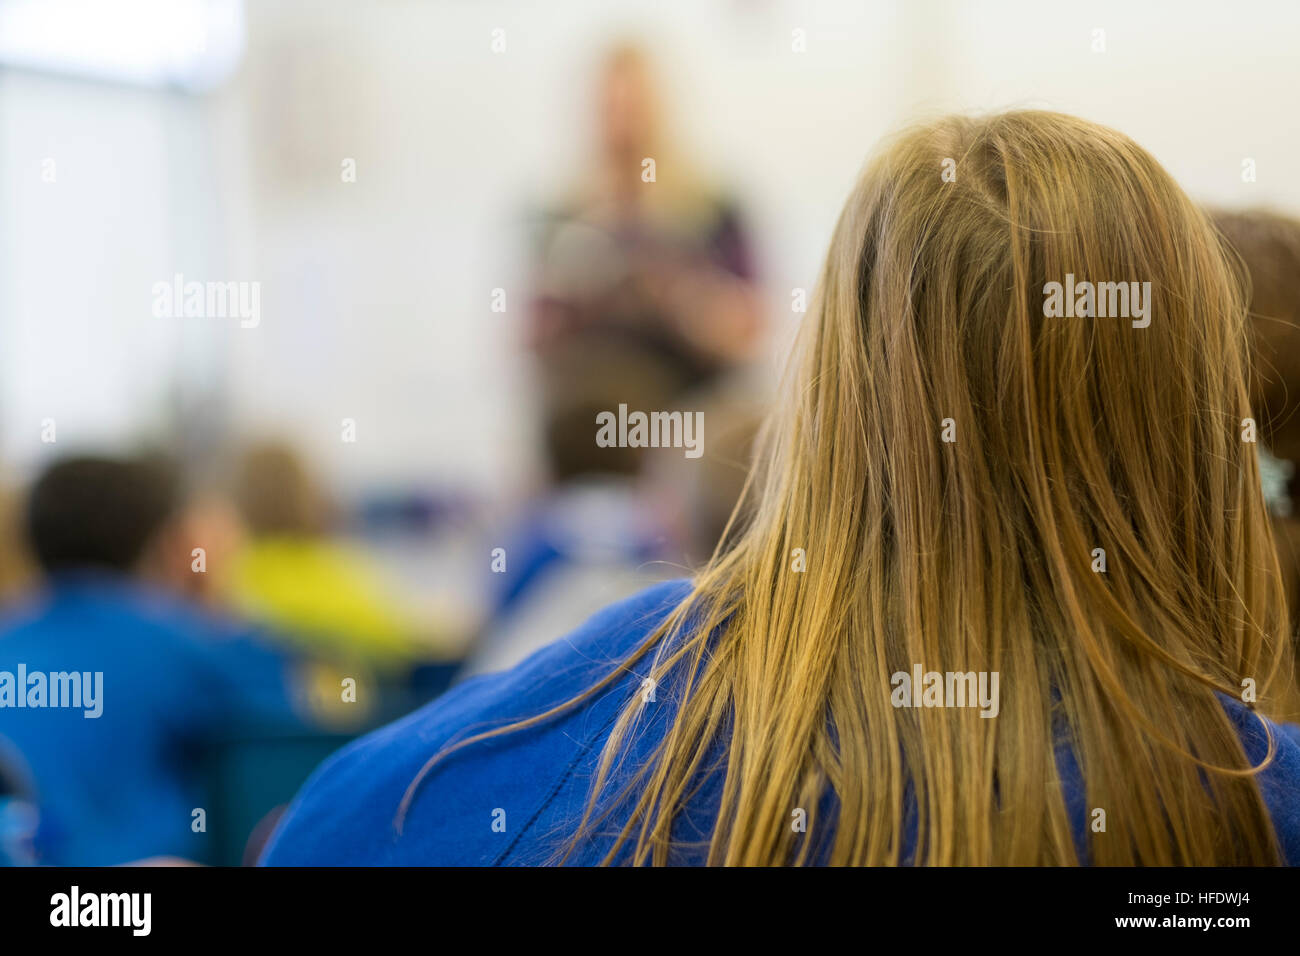 Primary School Education in Wales: Children in a primary school class classroom lesson, Wales UK - Stock Image